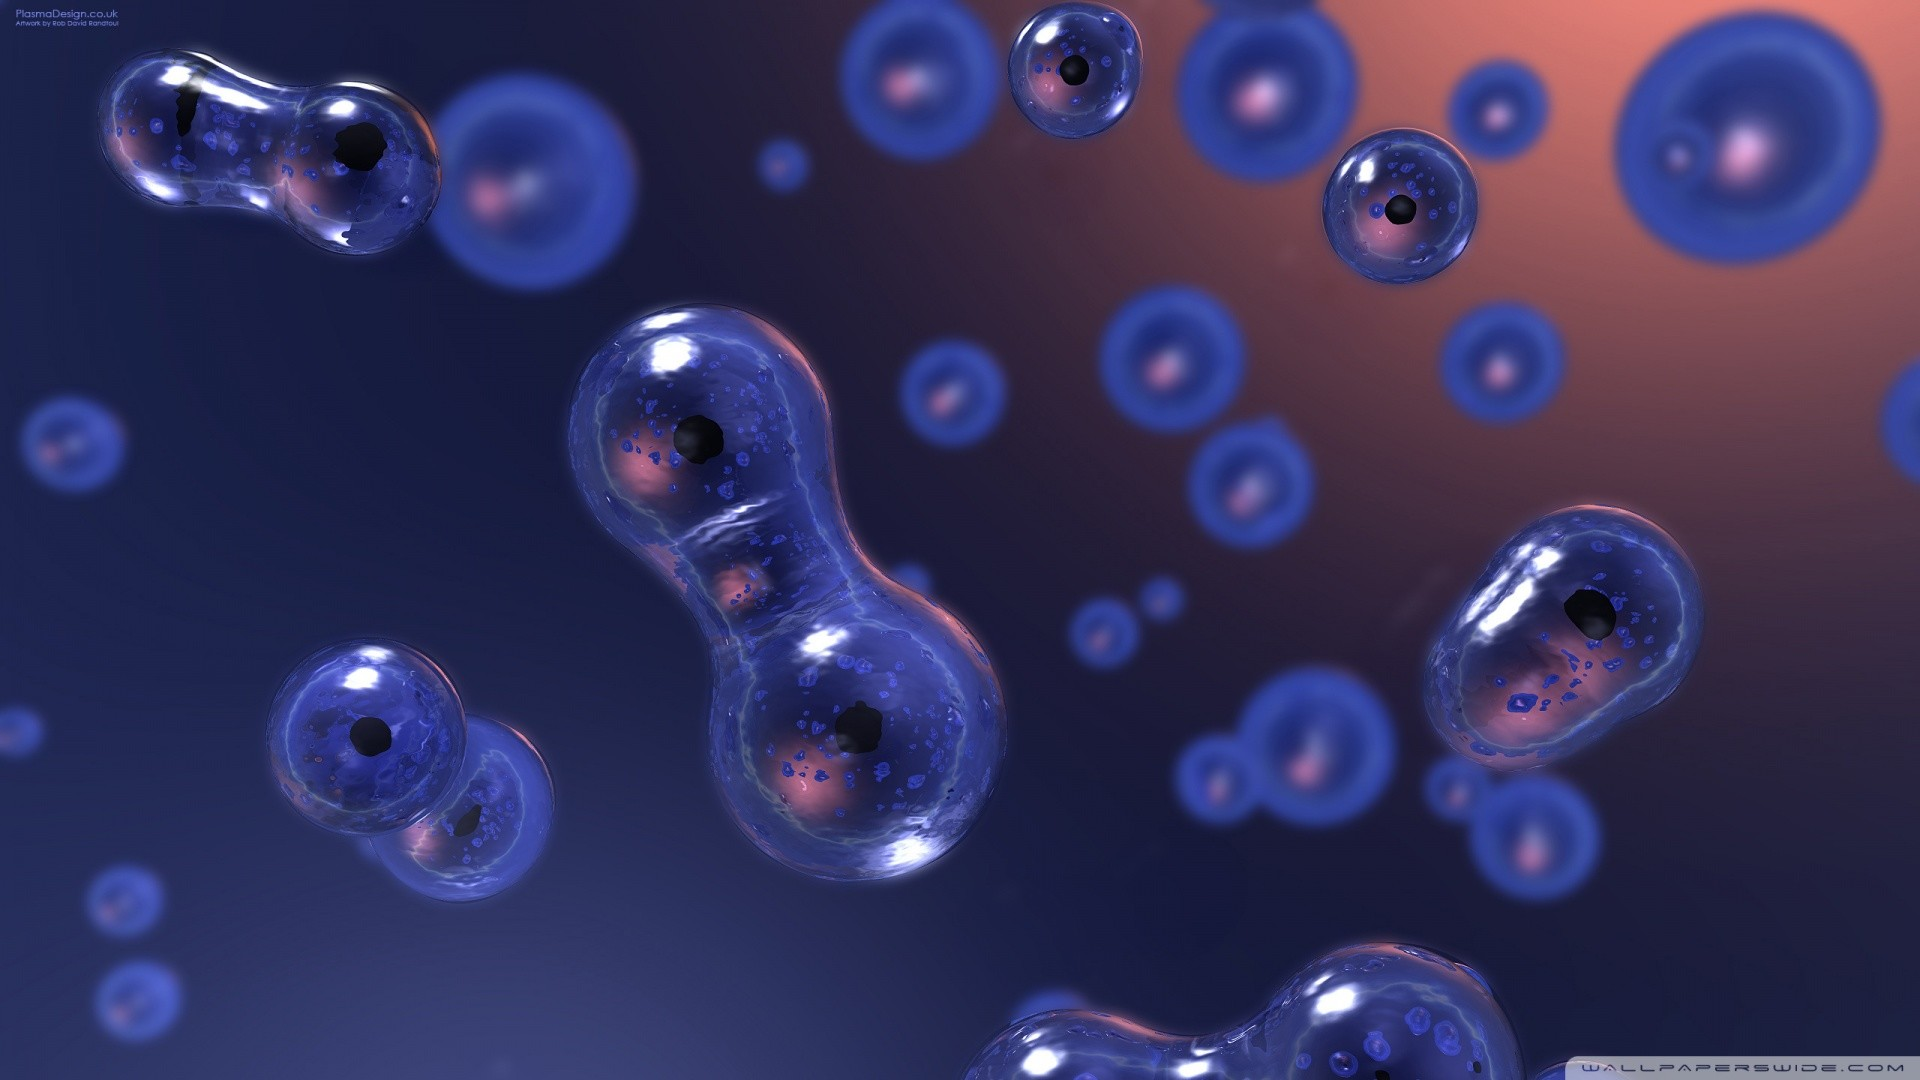 Cell Biology Wallpaper 62 images 1920x1080